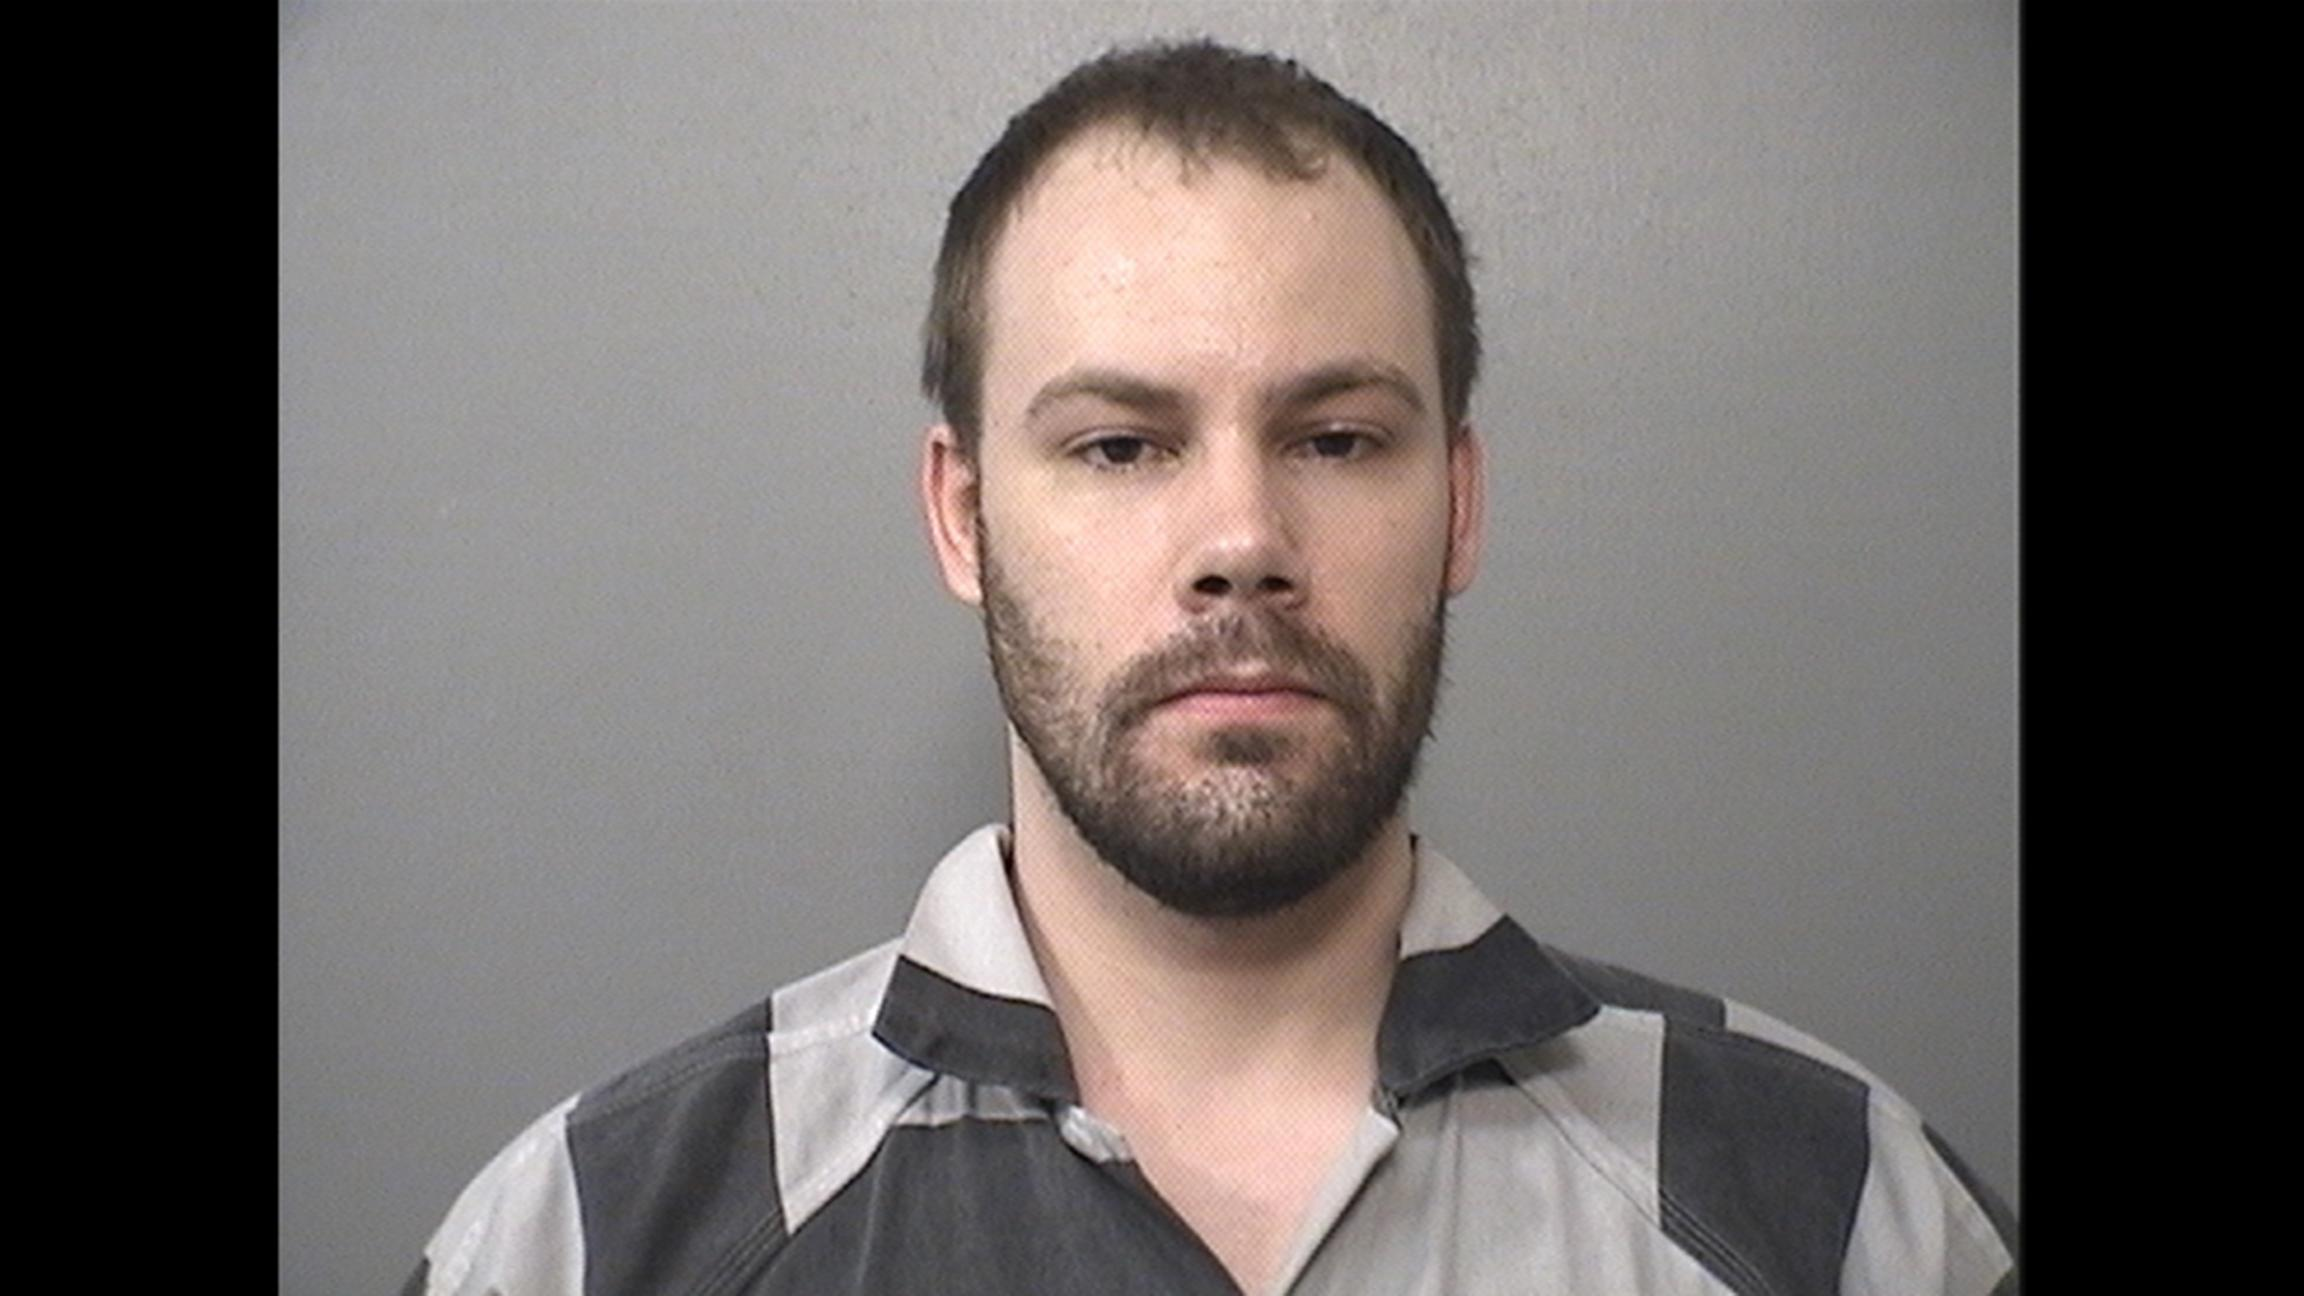 Brendt Christensen could face the death penalty if convicted in the disappearance and murder of Yingying Zhang. (Macon County Sheriff's Department)